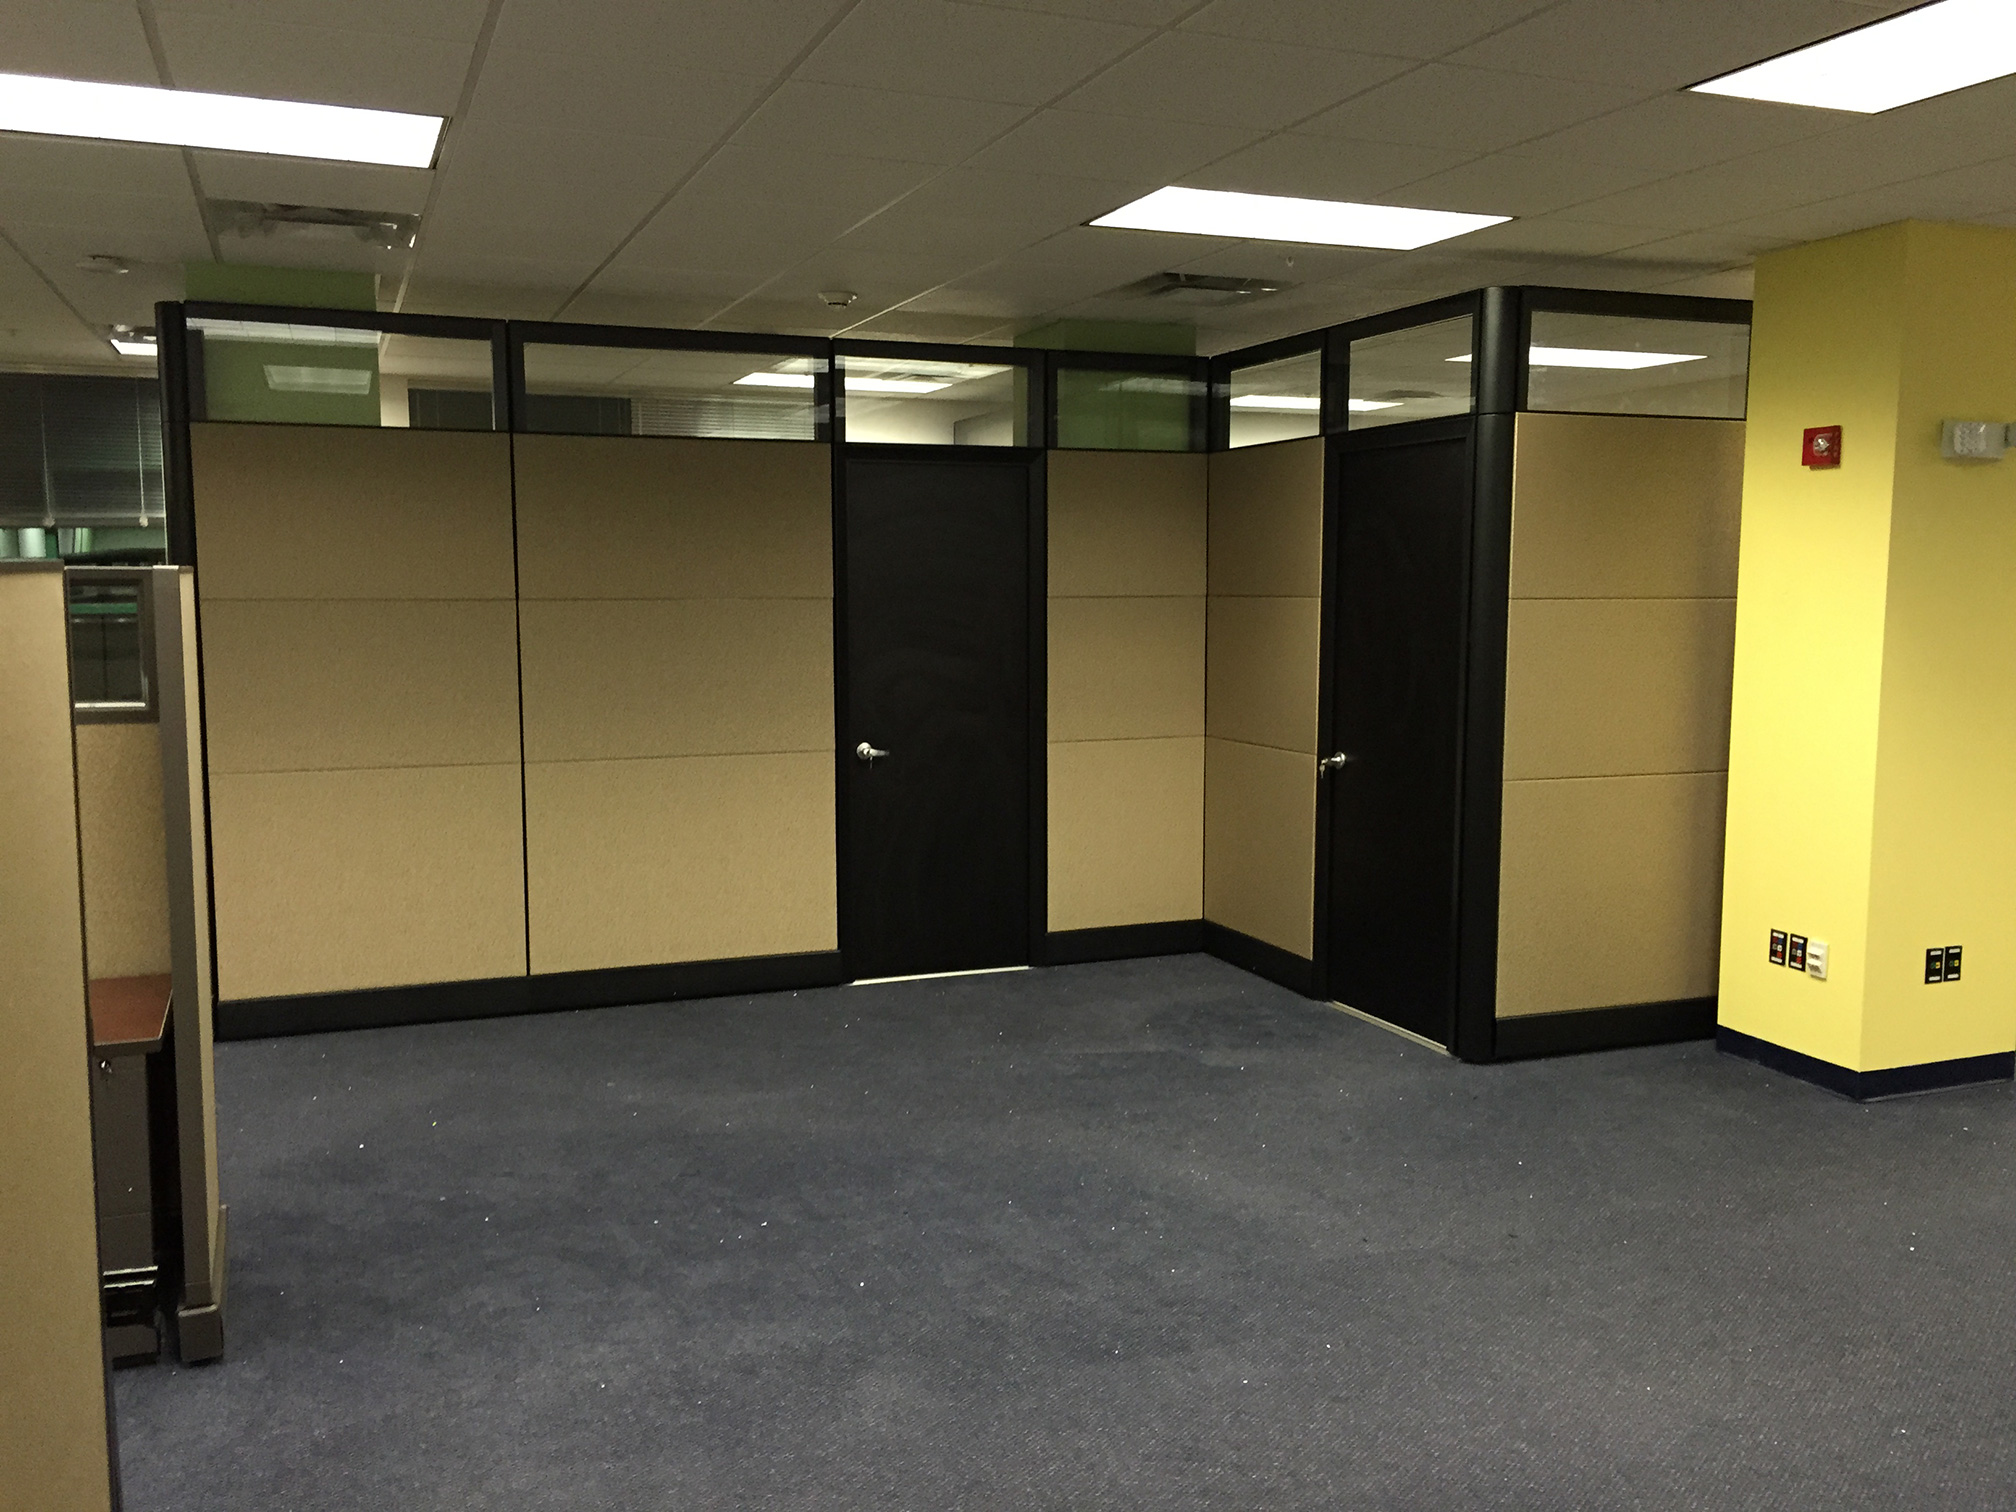 commercial-office-cubicles-in-key-west-florida.jpg